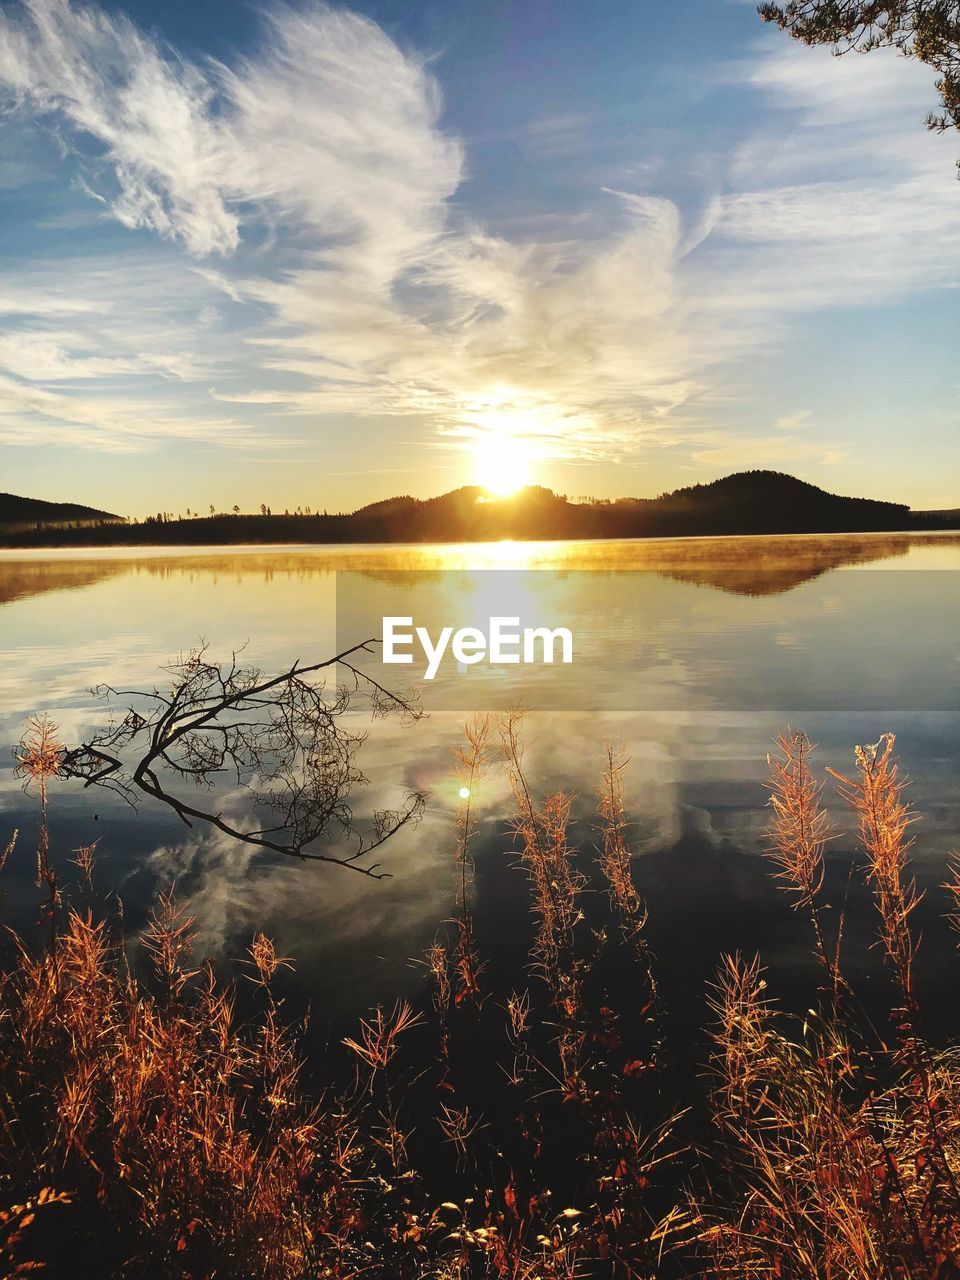 sky, water, tranquility, tranquil scene, lake, cloud - sky, scenics - nature, beauty in nature, reflection, sunset, plant, nature, no people, non-urban scene, sun, sunlight, idyllic, tree, outdoors